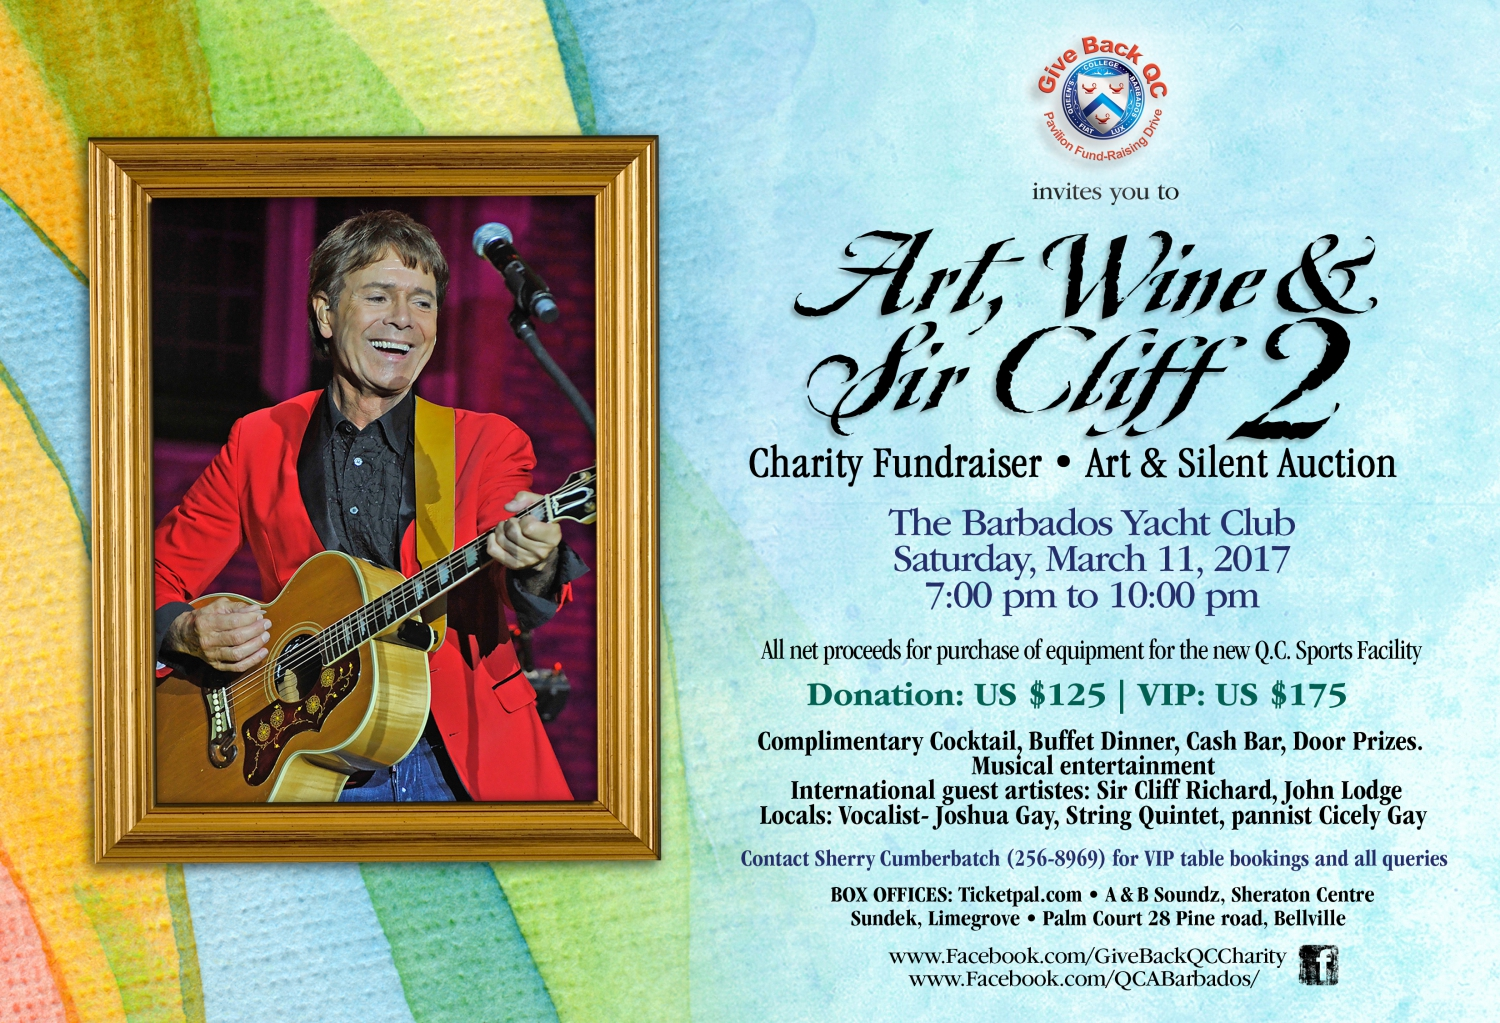 Art, Wine & Sir Cliff 2 Charity Fundraiser